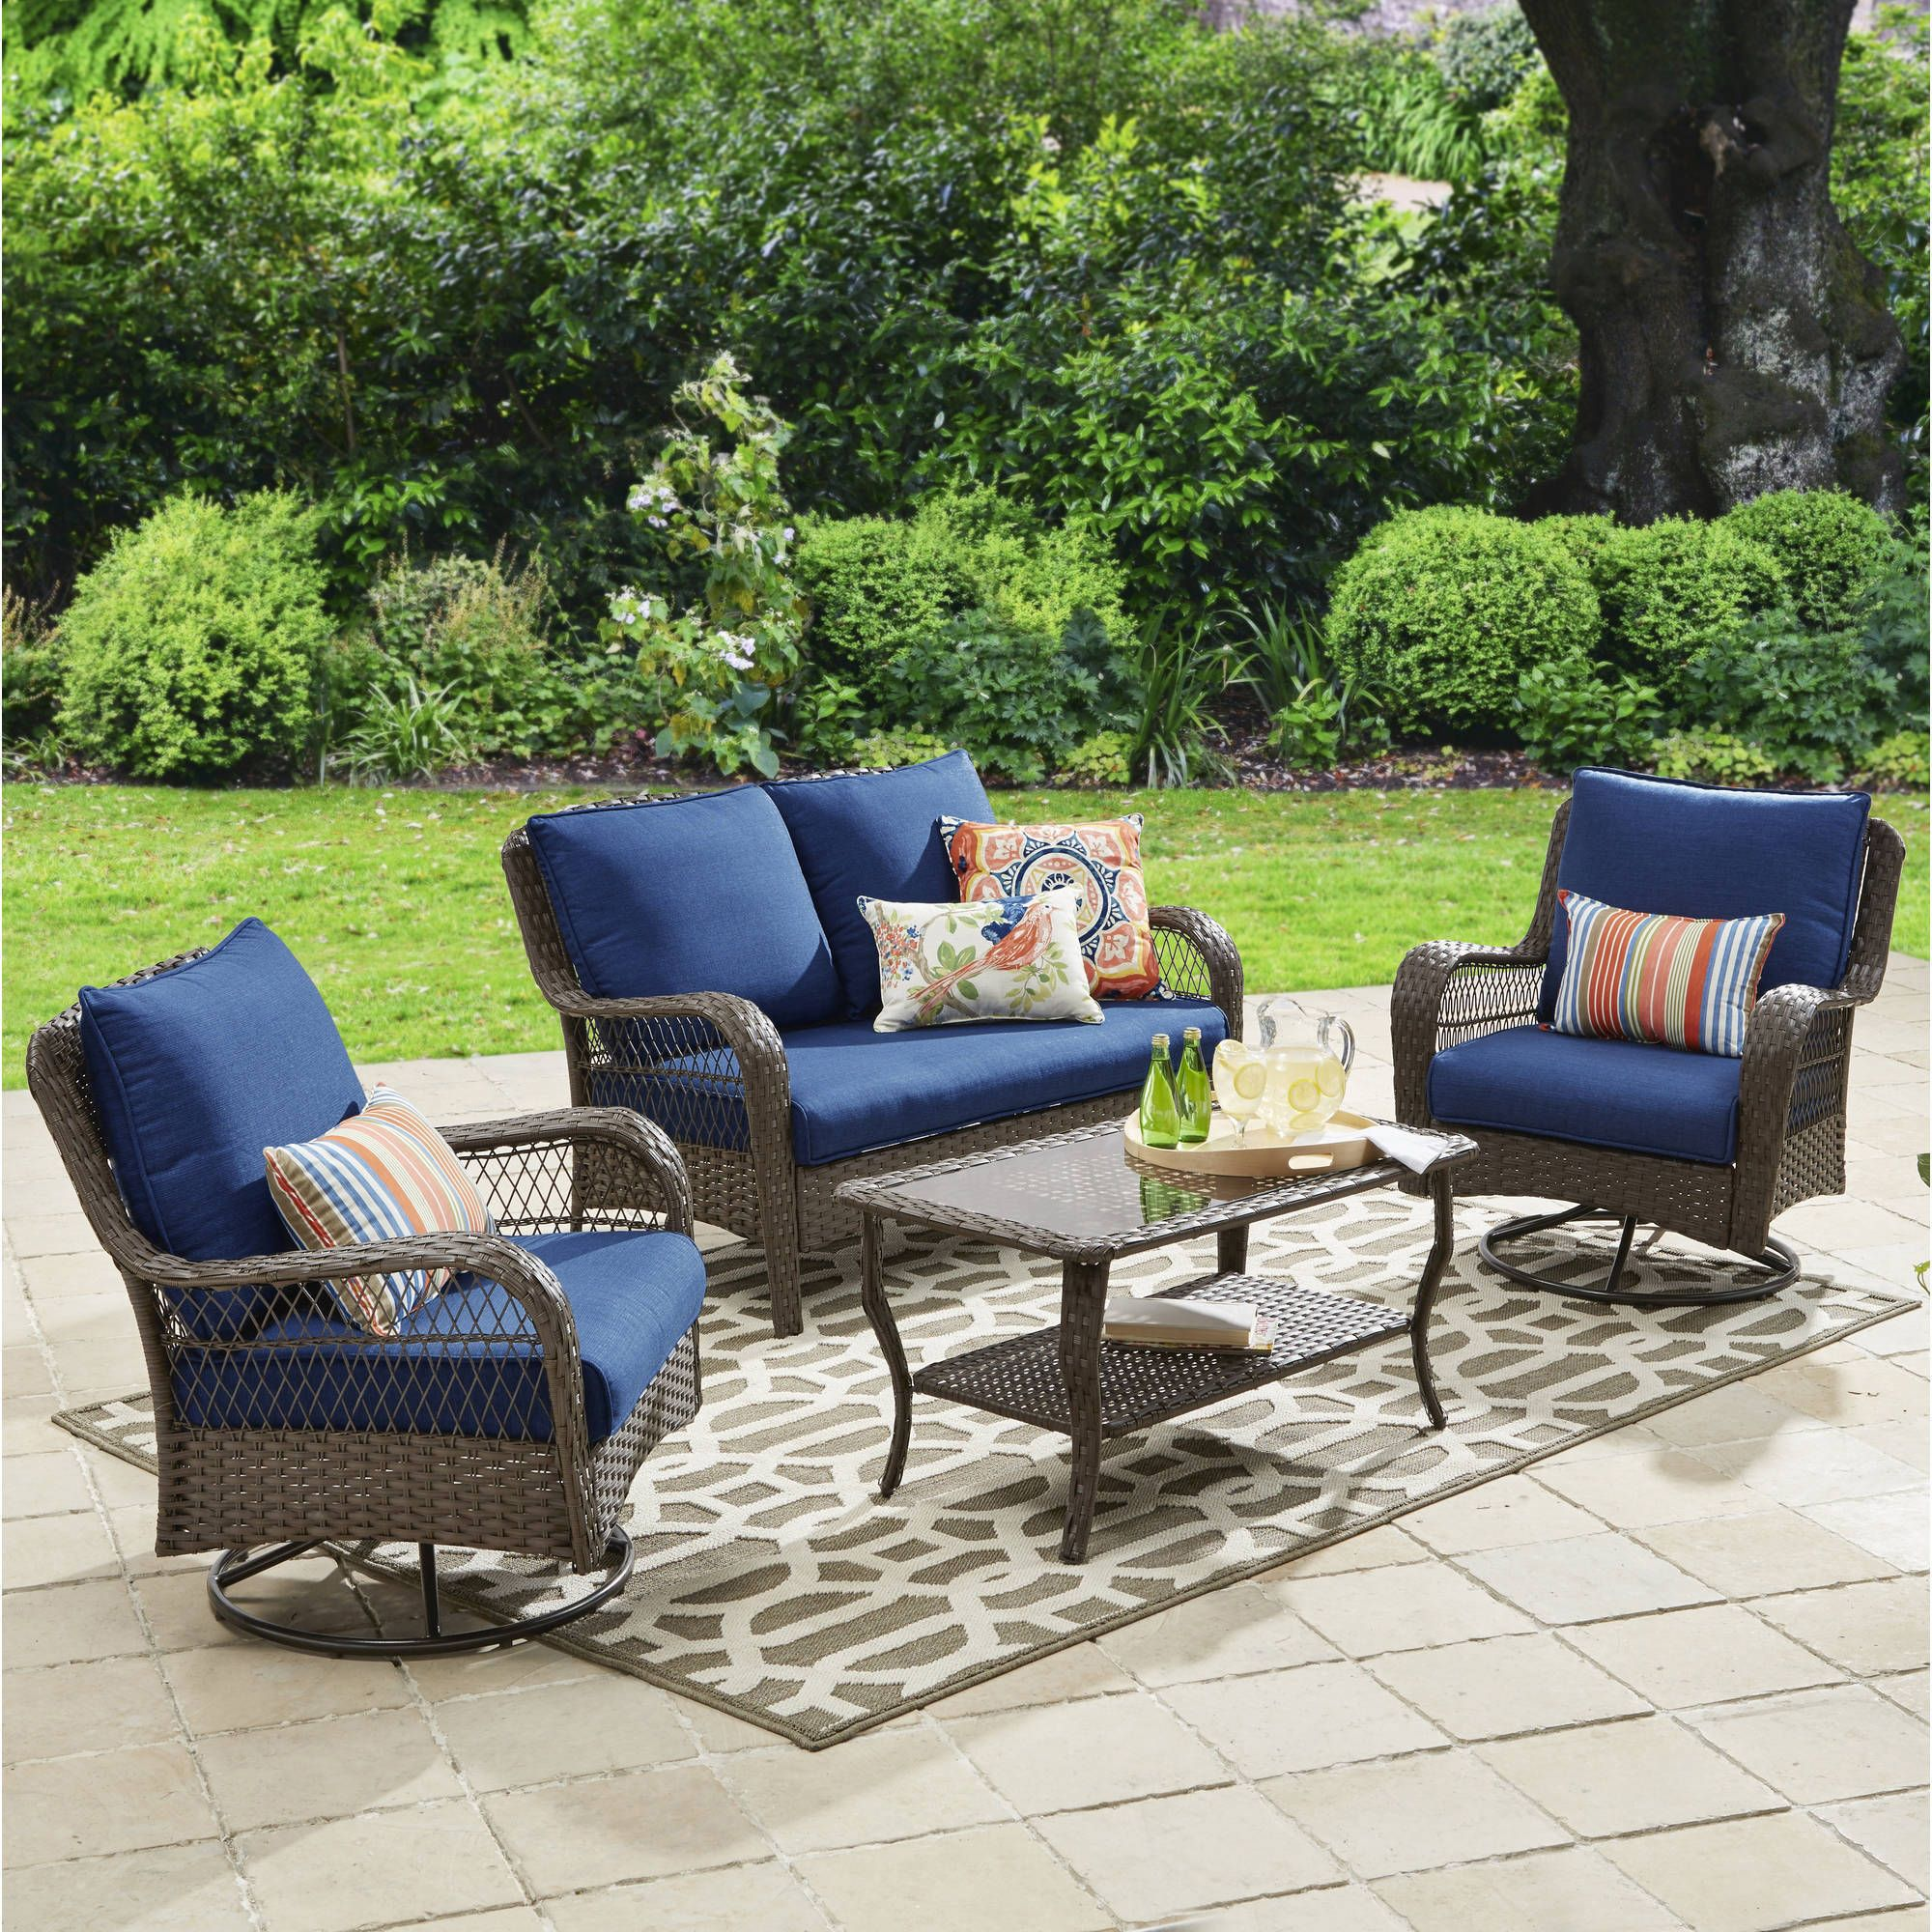 Looking For Resin Wicker Patio Sets Conversation Patio Sets? Explore Our  Selection Of Resin Wicker Patio Sets Conversation Patio Sets For Sale U0026  Great Deals ...